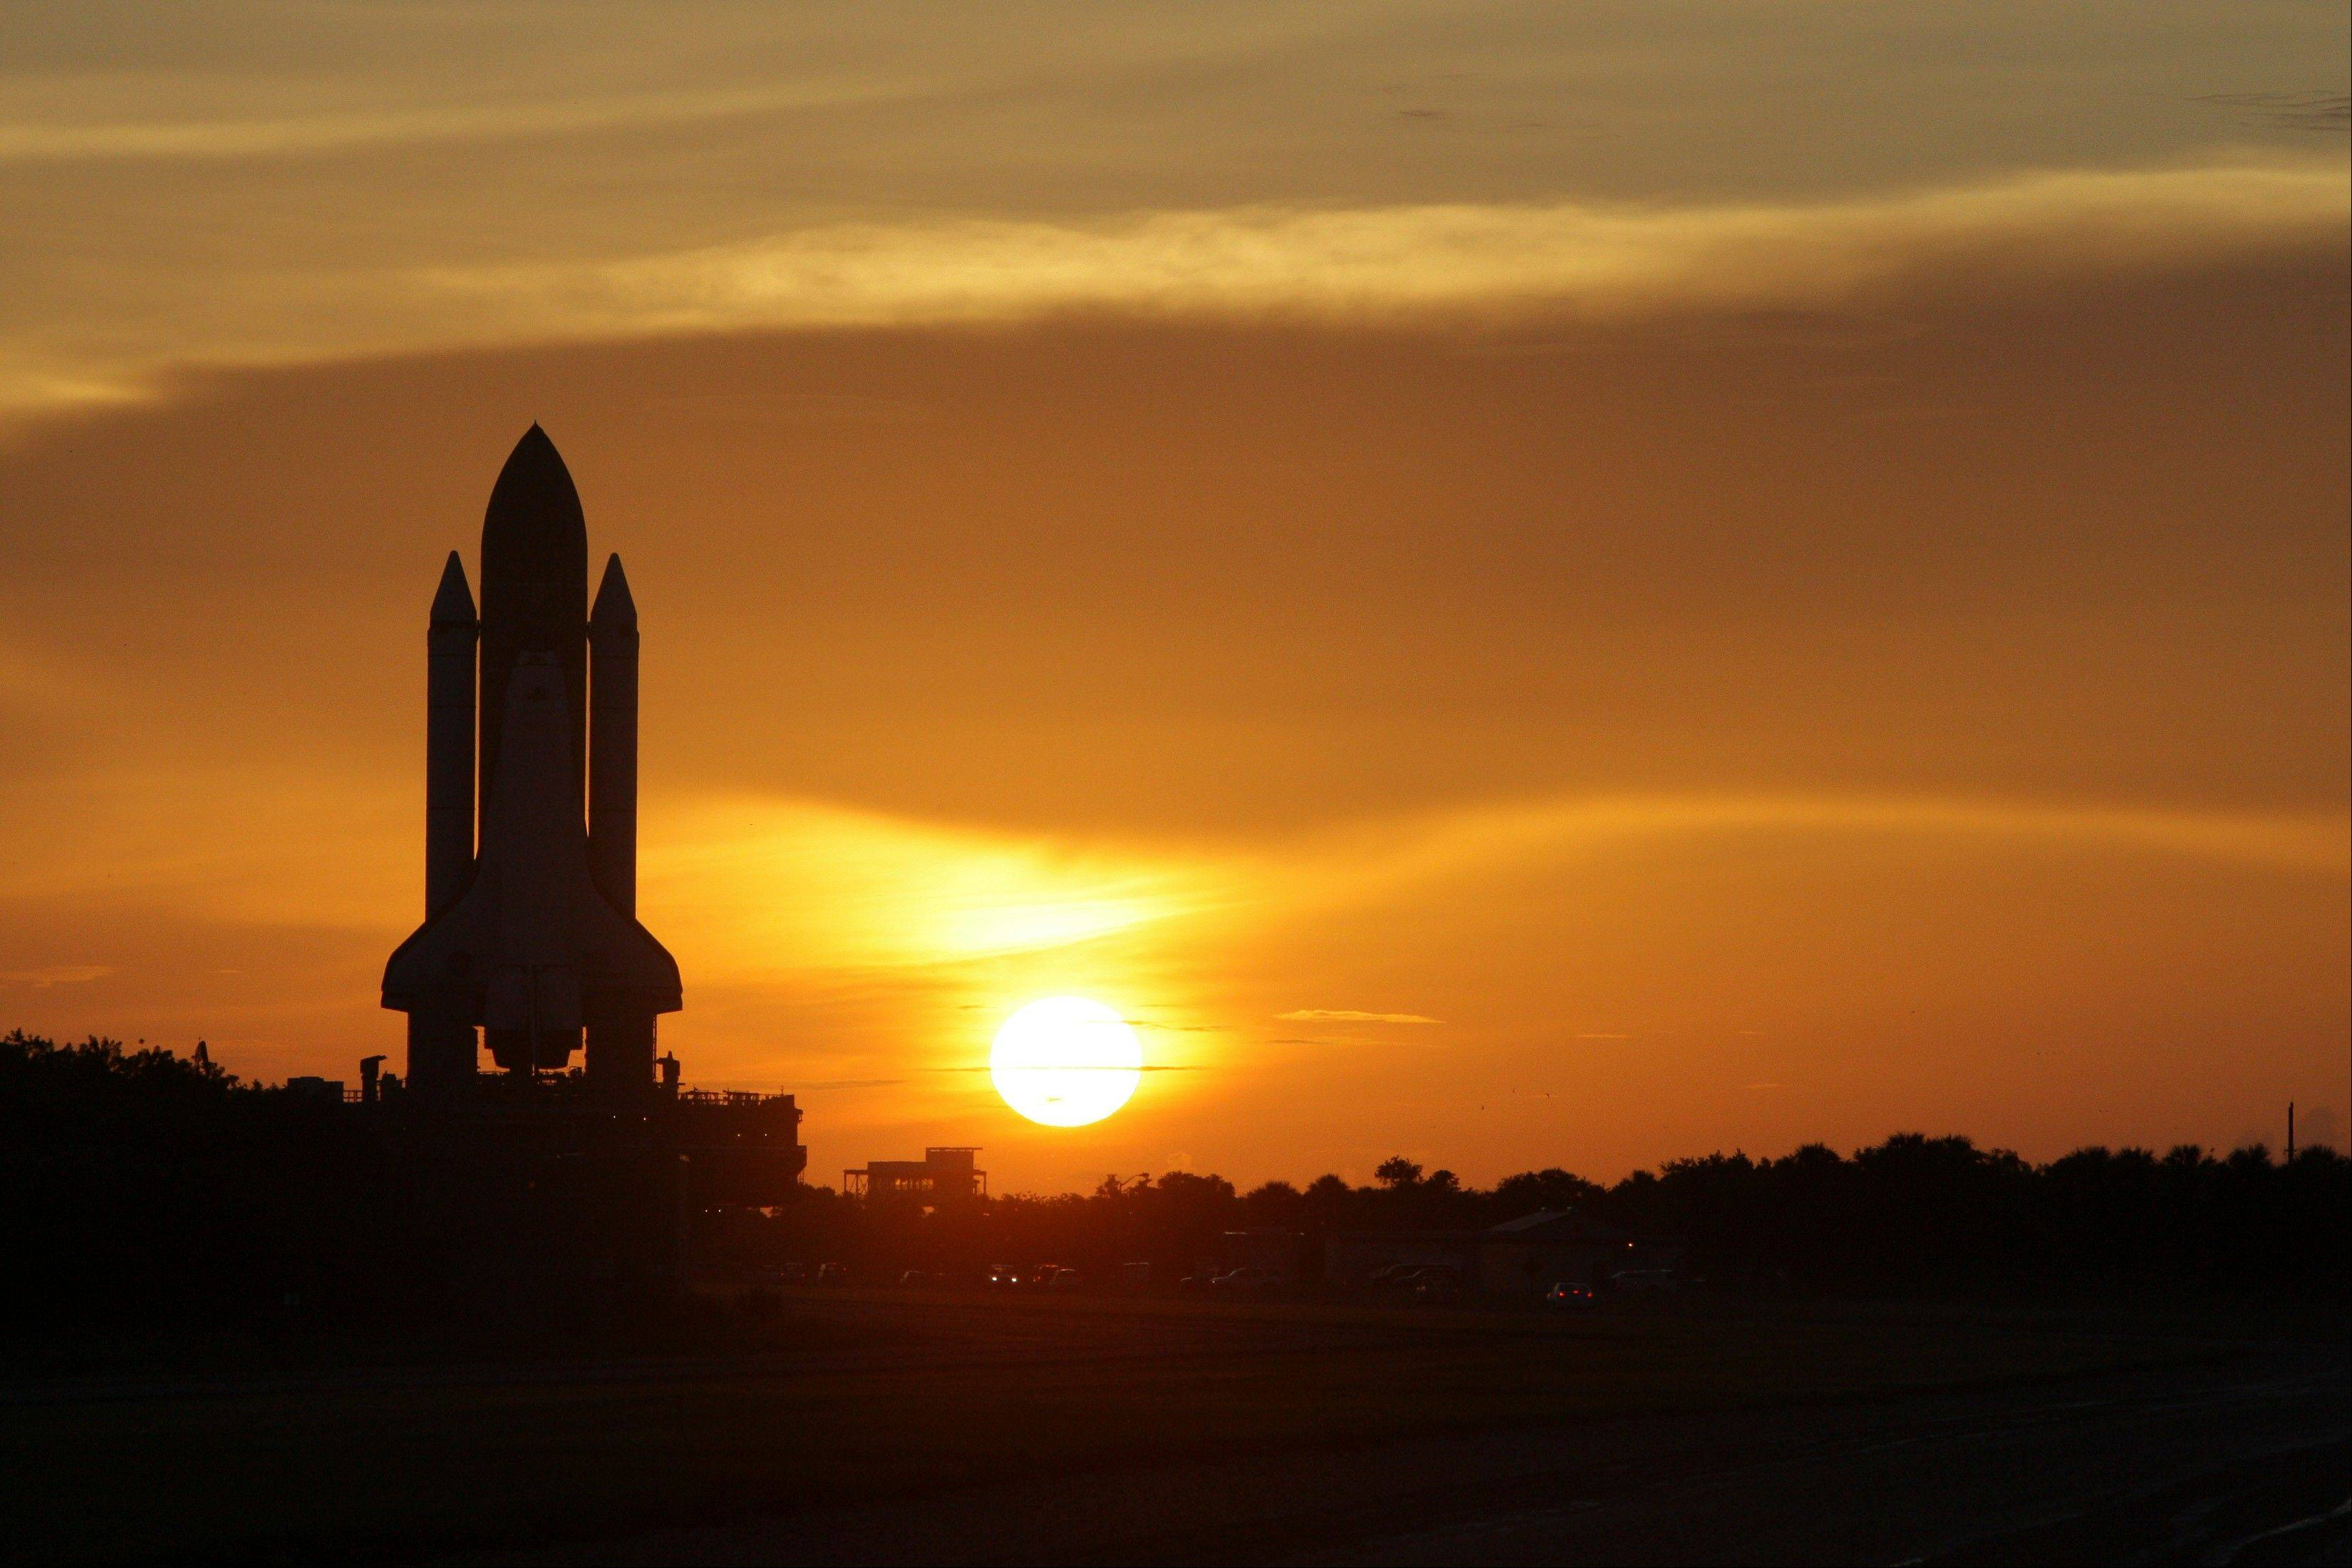 In this Tuesday, Aug. 4, 2009 file photo, Space shuttle Discovery moves along it's path at sunrise to pad 39A at the Kennedy Space Center in Cape Canaveral, Fla. The space shuttle was sold to America as cheap, safe and reliable. It was none of those. It cost tens of billions of dollars, ended the lives of 14 astronauts and managed to make fewer half the flights promised. Yet despite all that, there were monumental achievements that in the beginning were unforeseen: major scientific advances, stunning photos of the cosmos, a high-flying vehicle of diplomacy that helped bring Cold War enemies closer, and something to brag about.